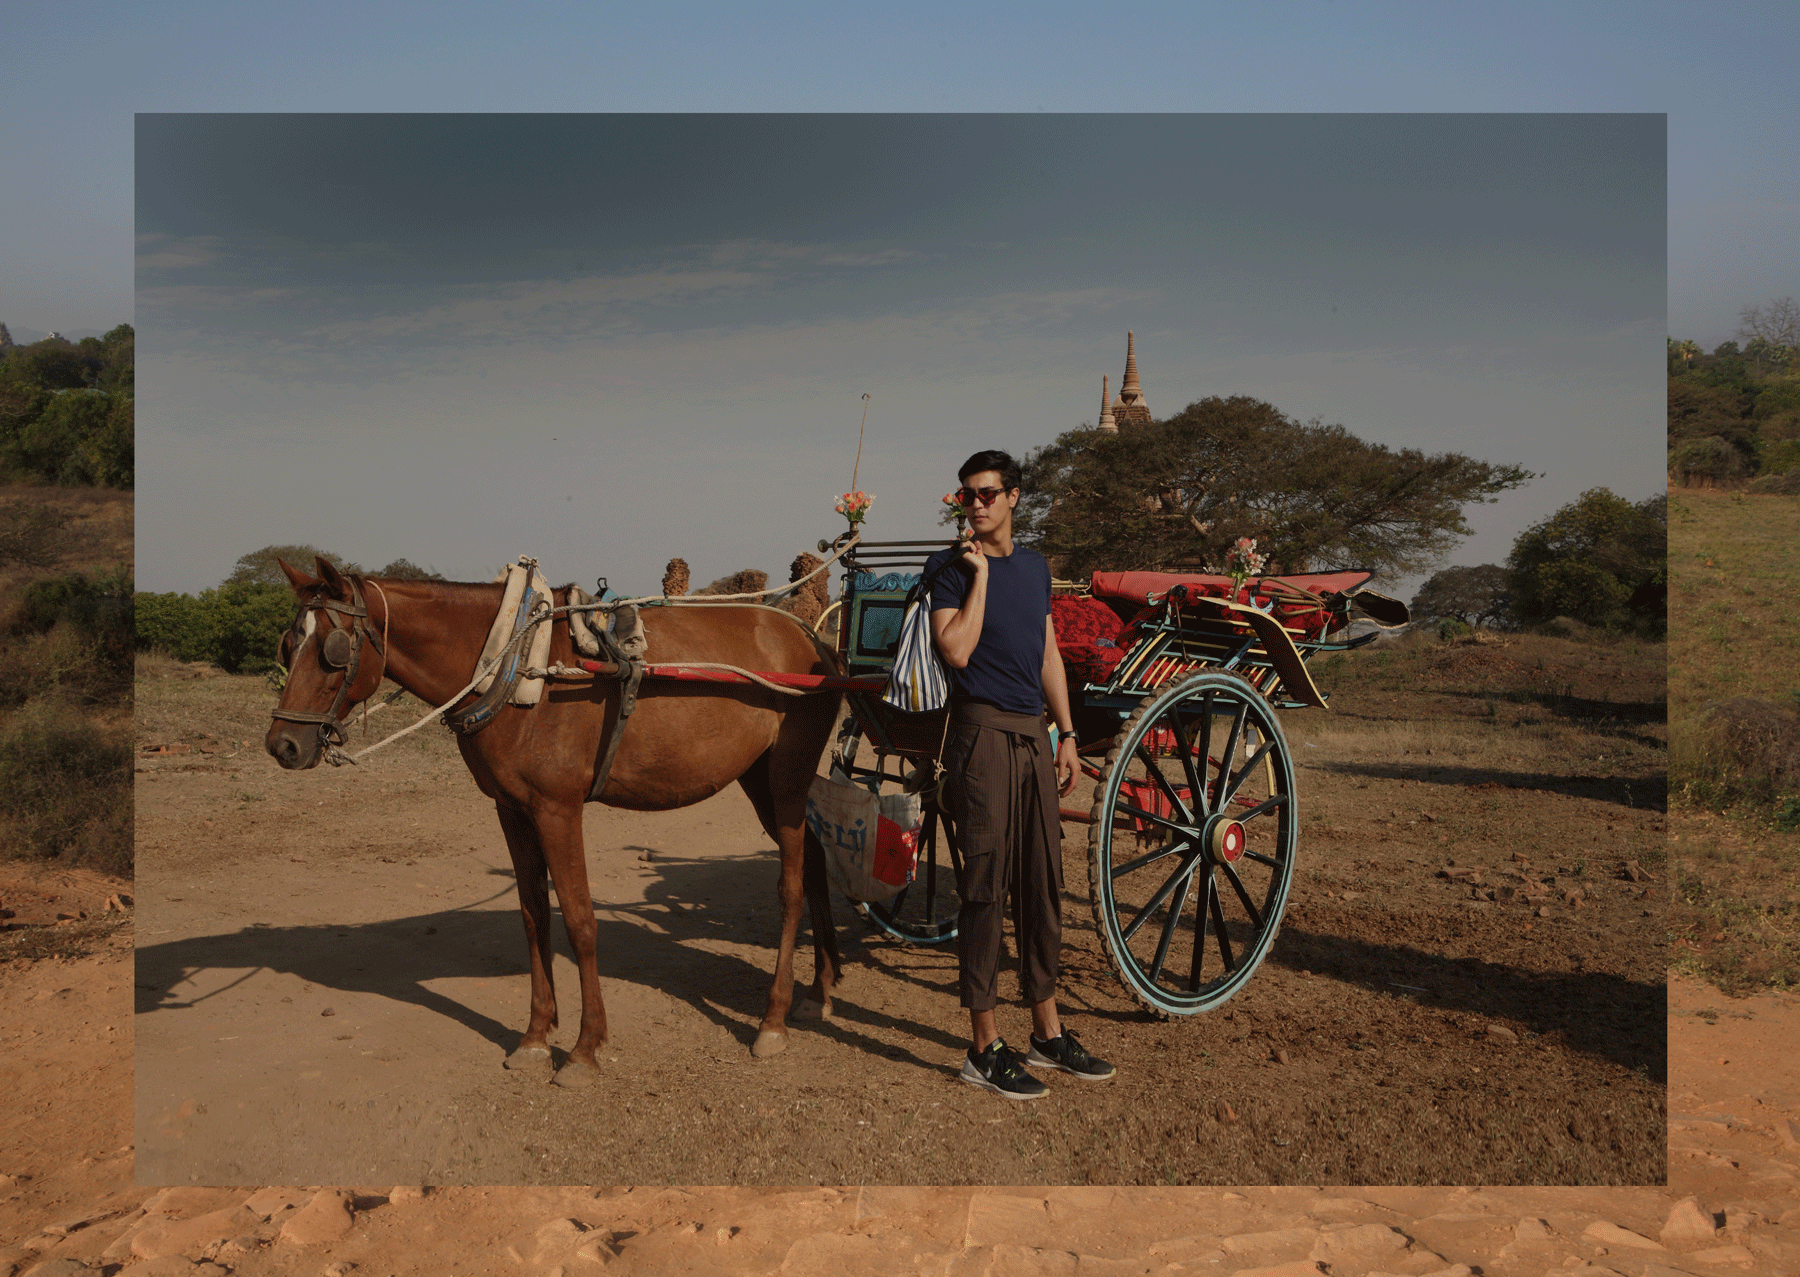 Traditional Horse Cart Ride in Old Bagan  Tshirt : JOCKEY / pants : SARIT / sunglasses : SPEKTRE / watch : FORREST